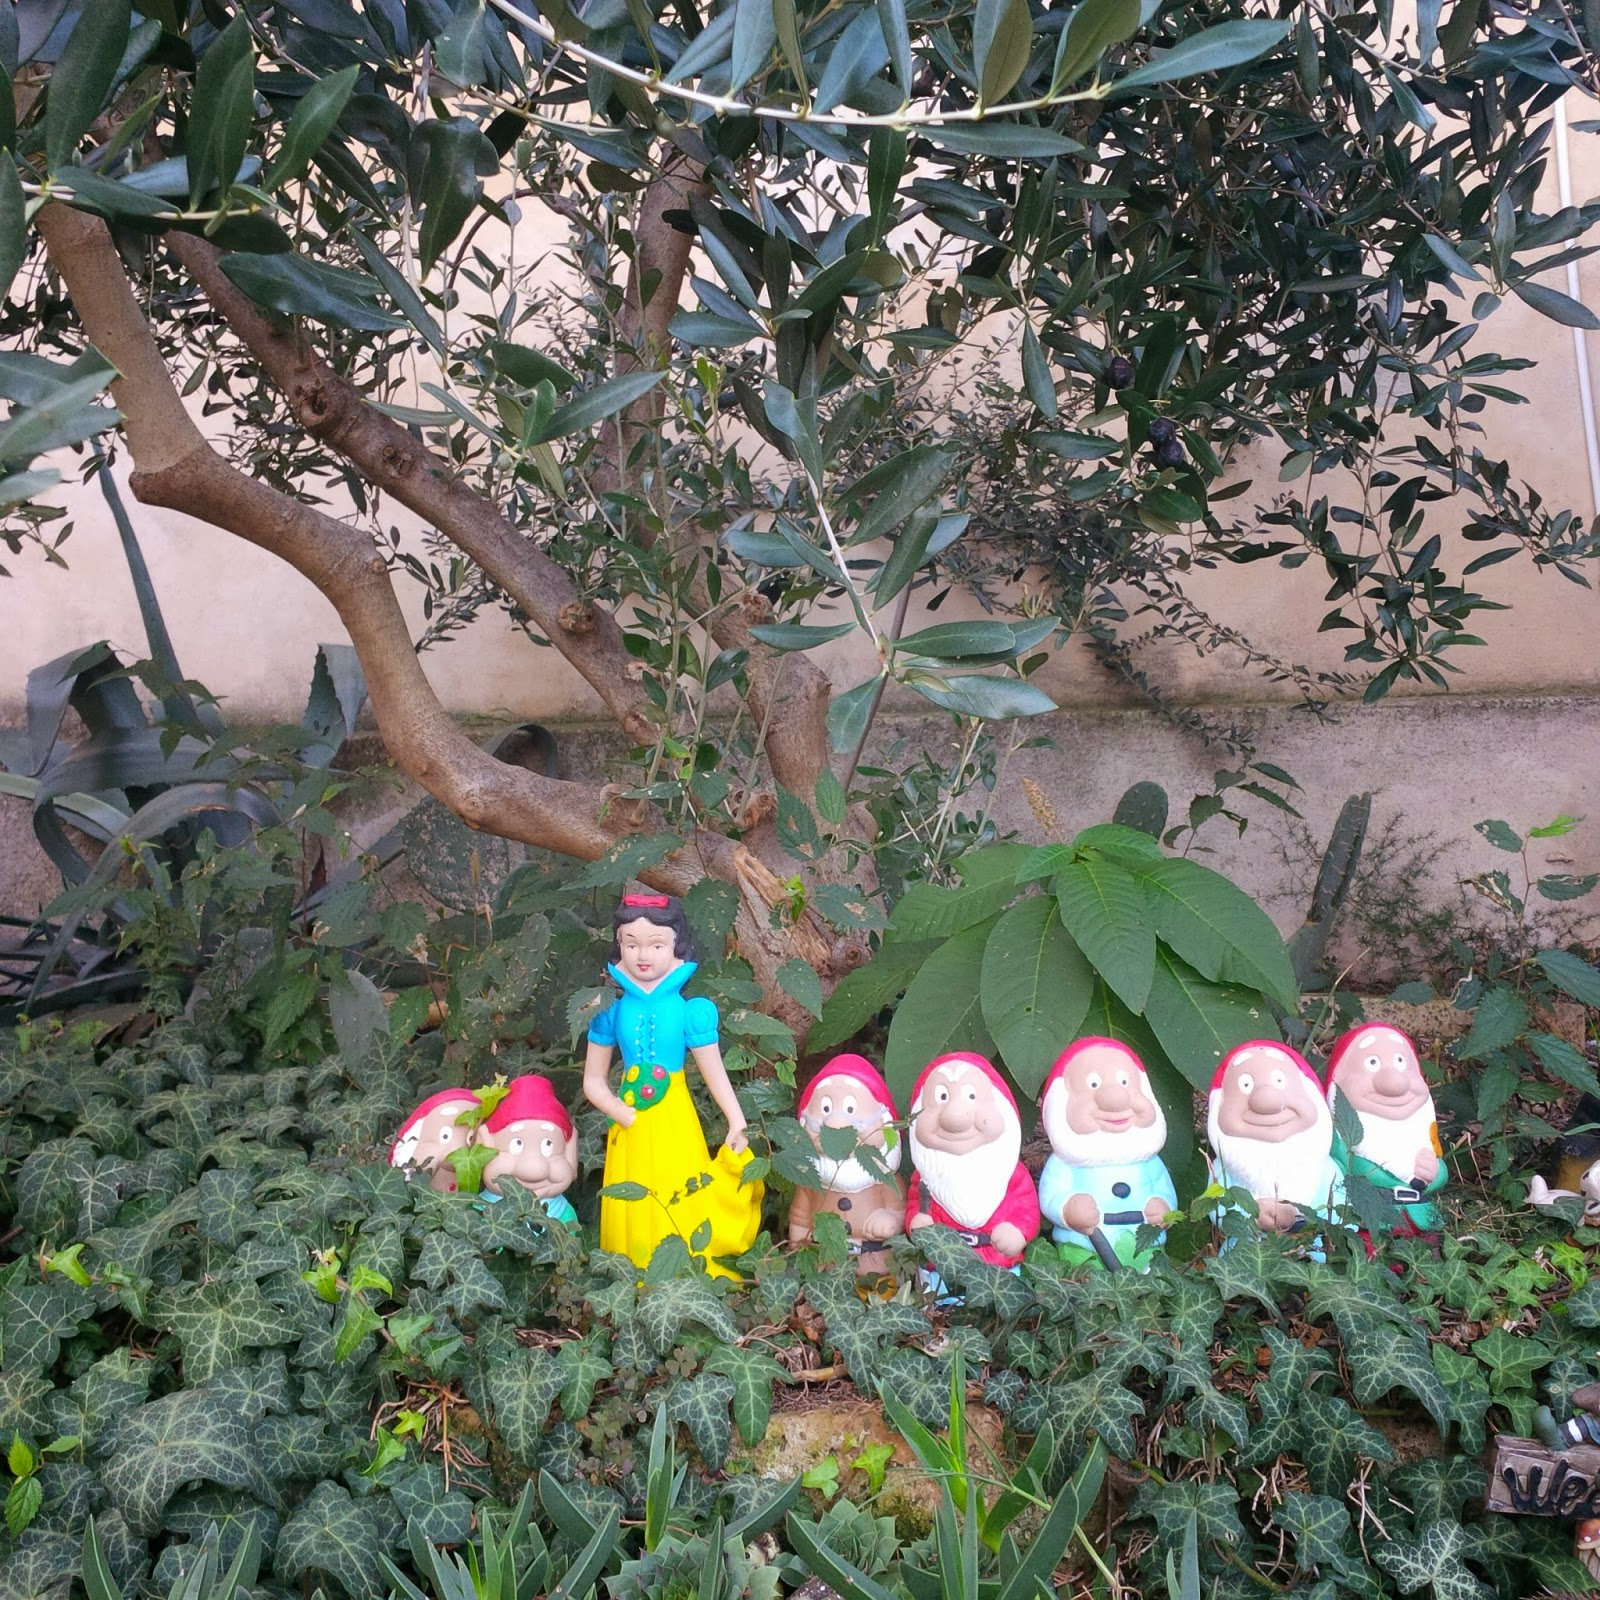 Disney figurines under an olive tree in the garden of a cafe in Arqua Petrarca